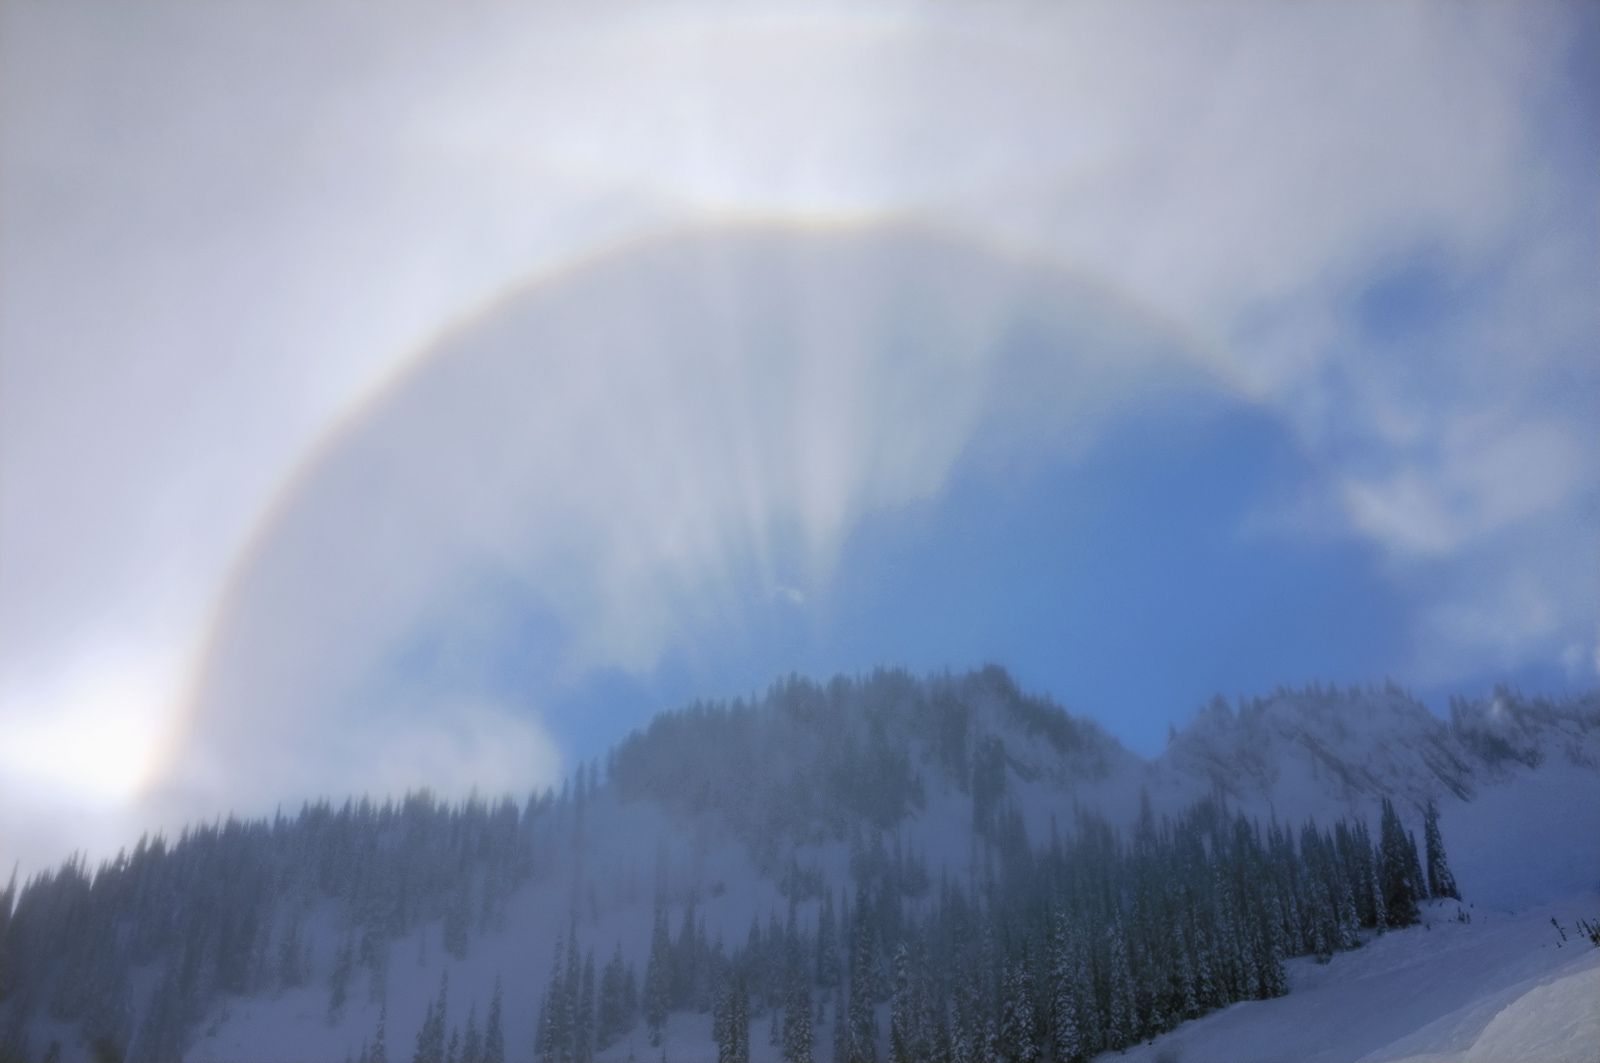 While out on a ski trip in Canada I was amazed to see this gorgeous corona forming over the crest of the tree topped mountains...